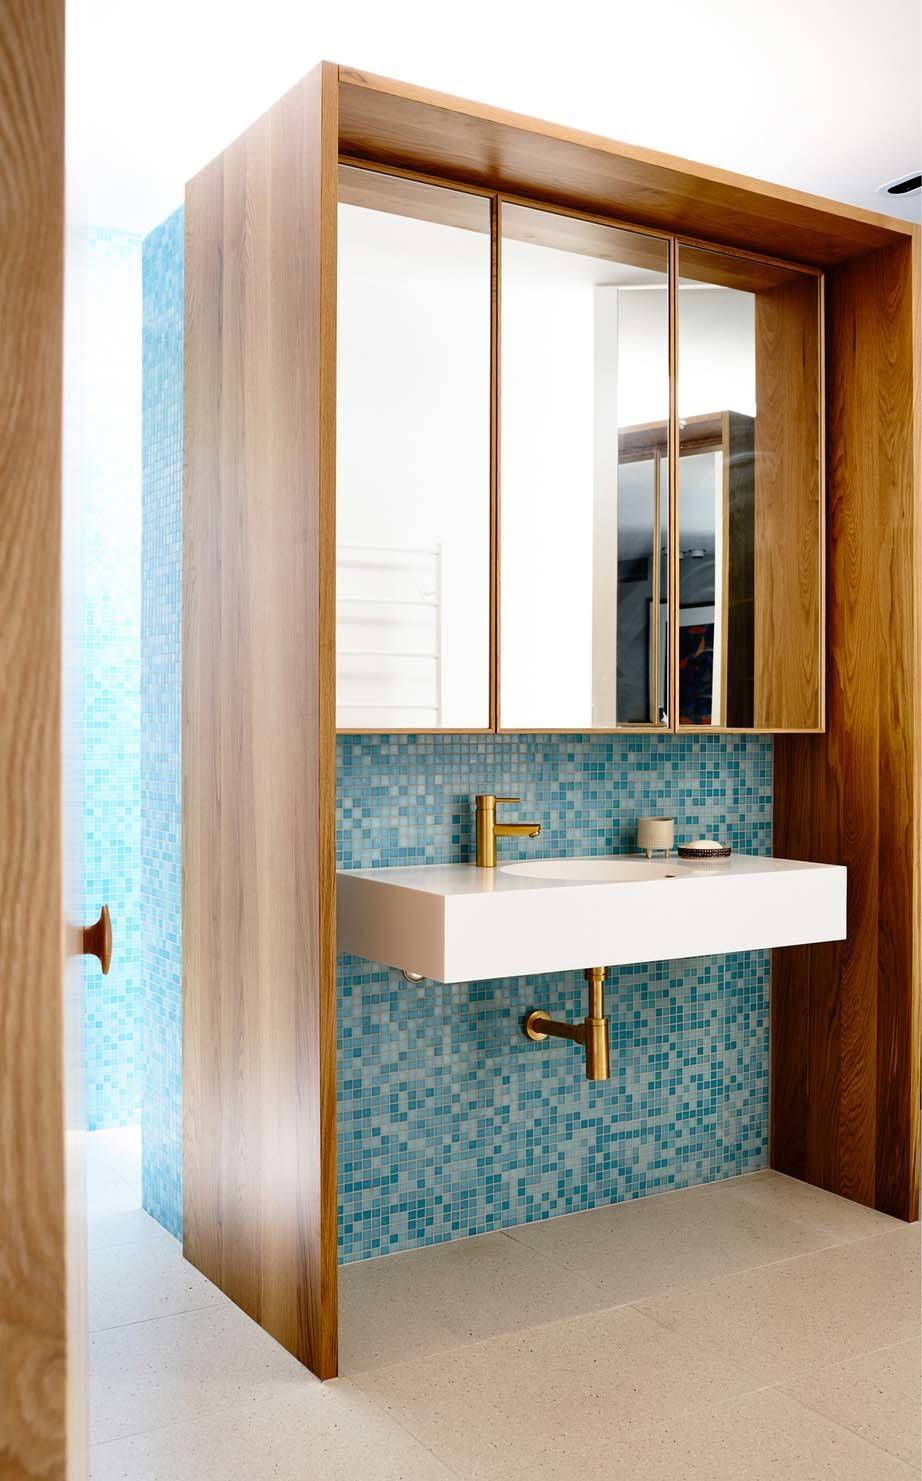 Mid-Century-Modern-Bathroom-Ideas-05-1-Kindesign.jpg